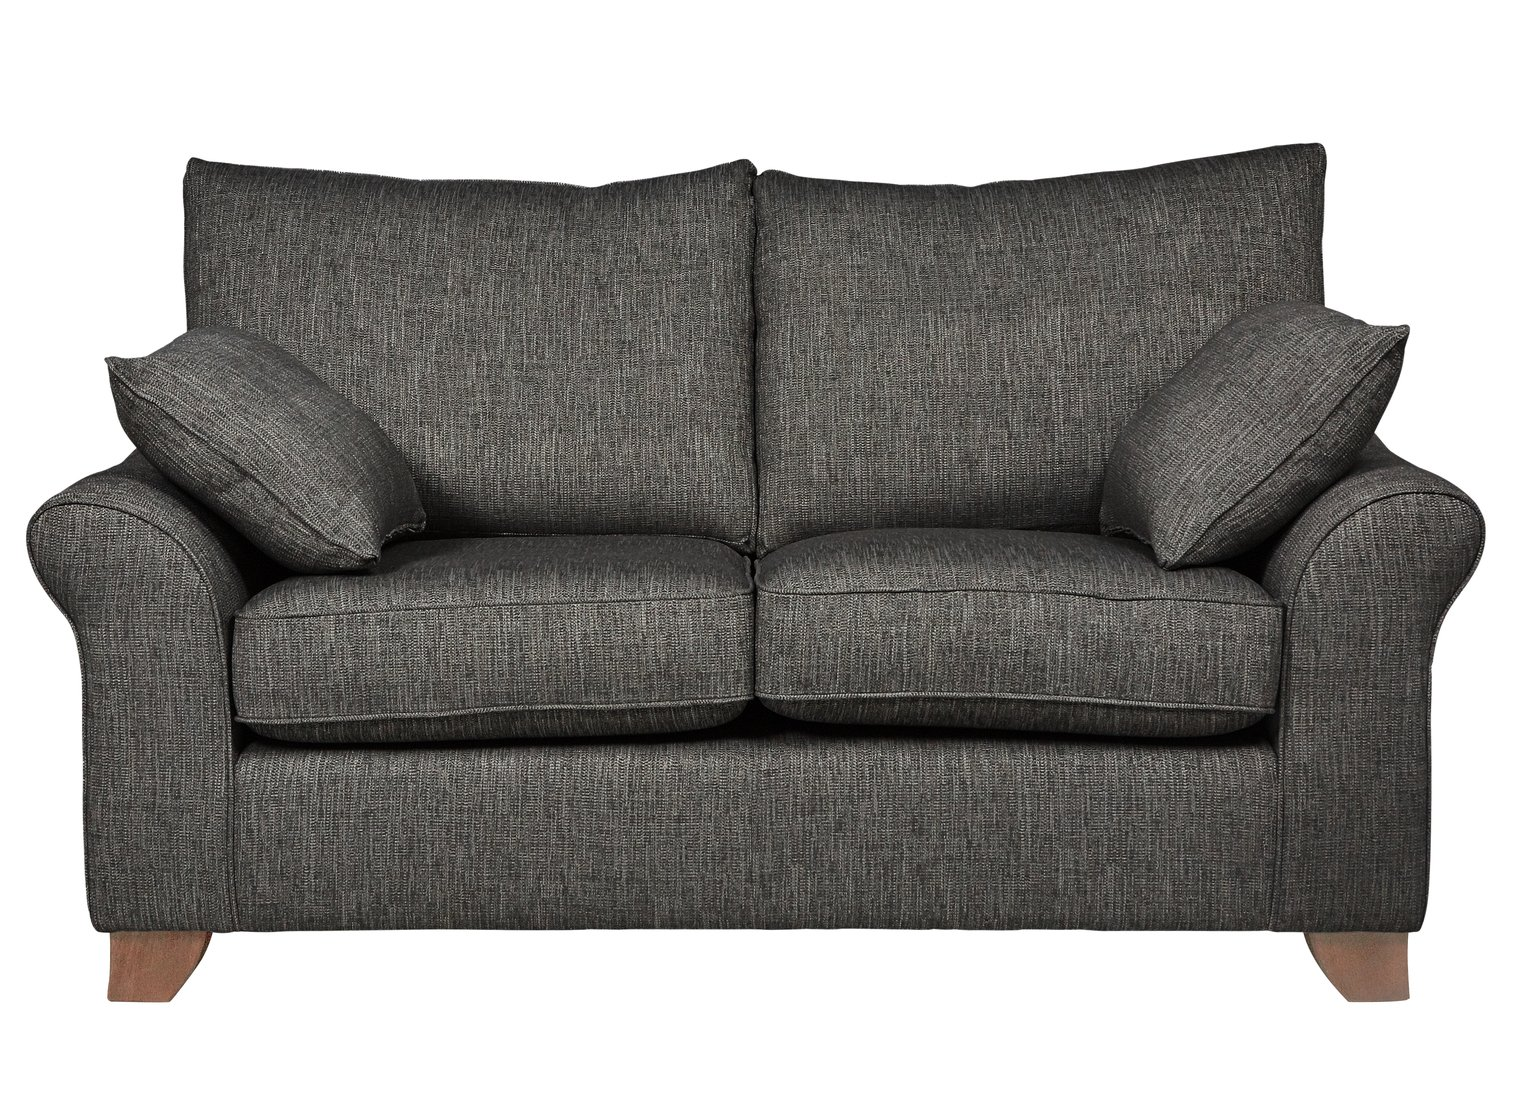 Argos Home Gracie 2 Seater Fabric Sofa - Charcoal